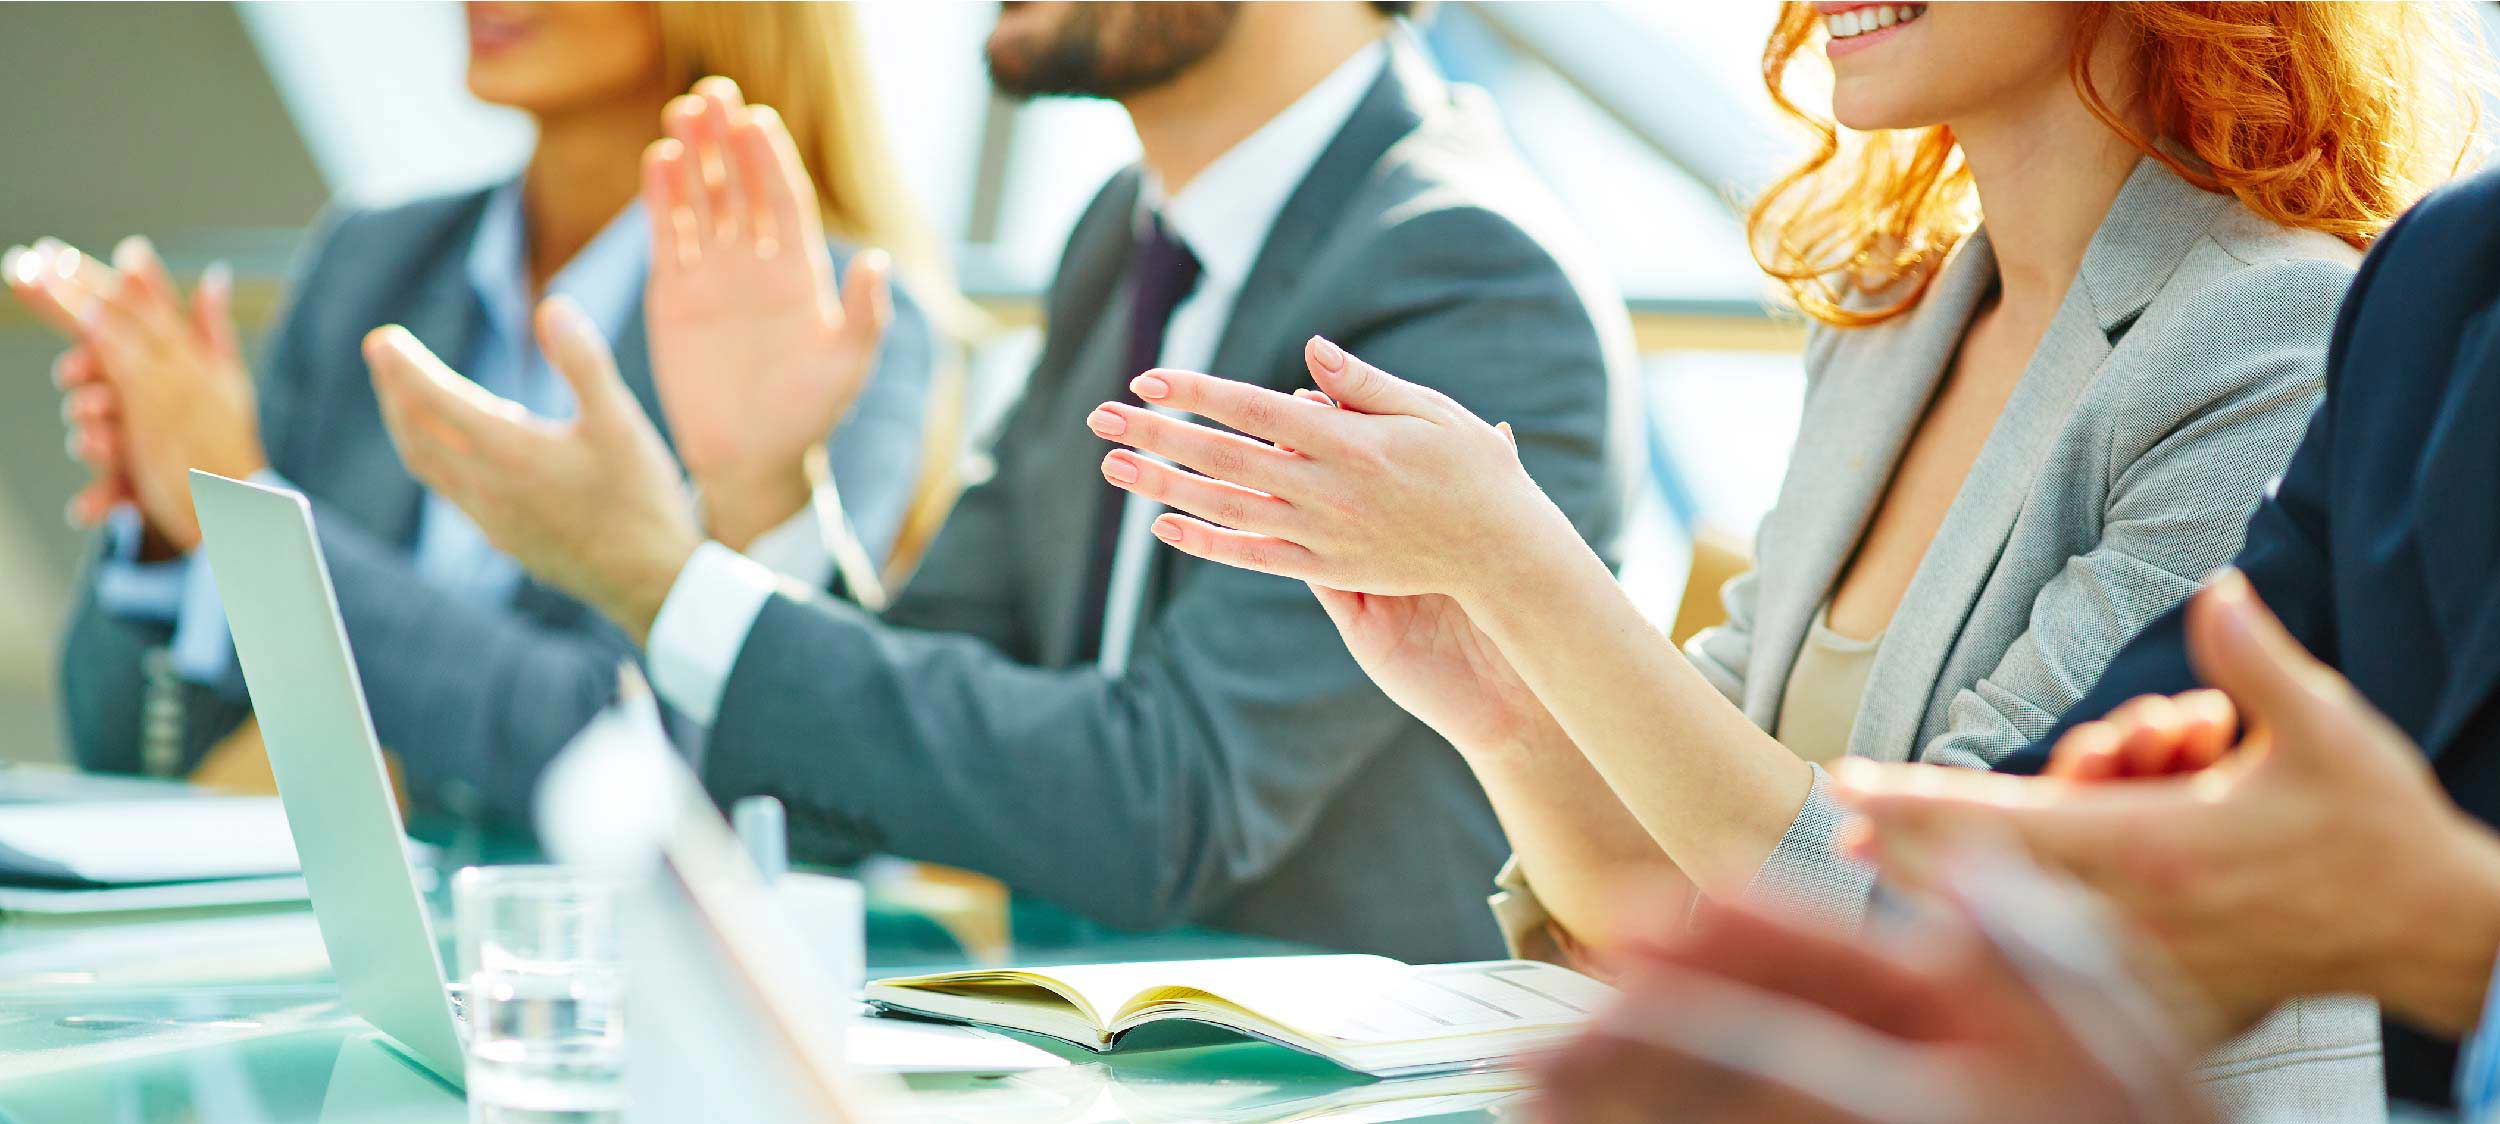 Group of business professionals applauding while sitting